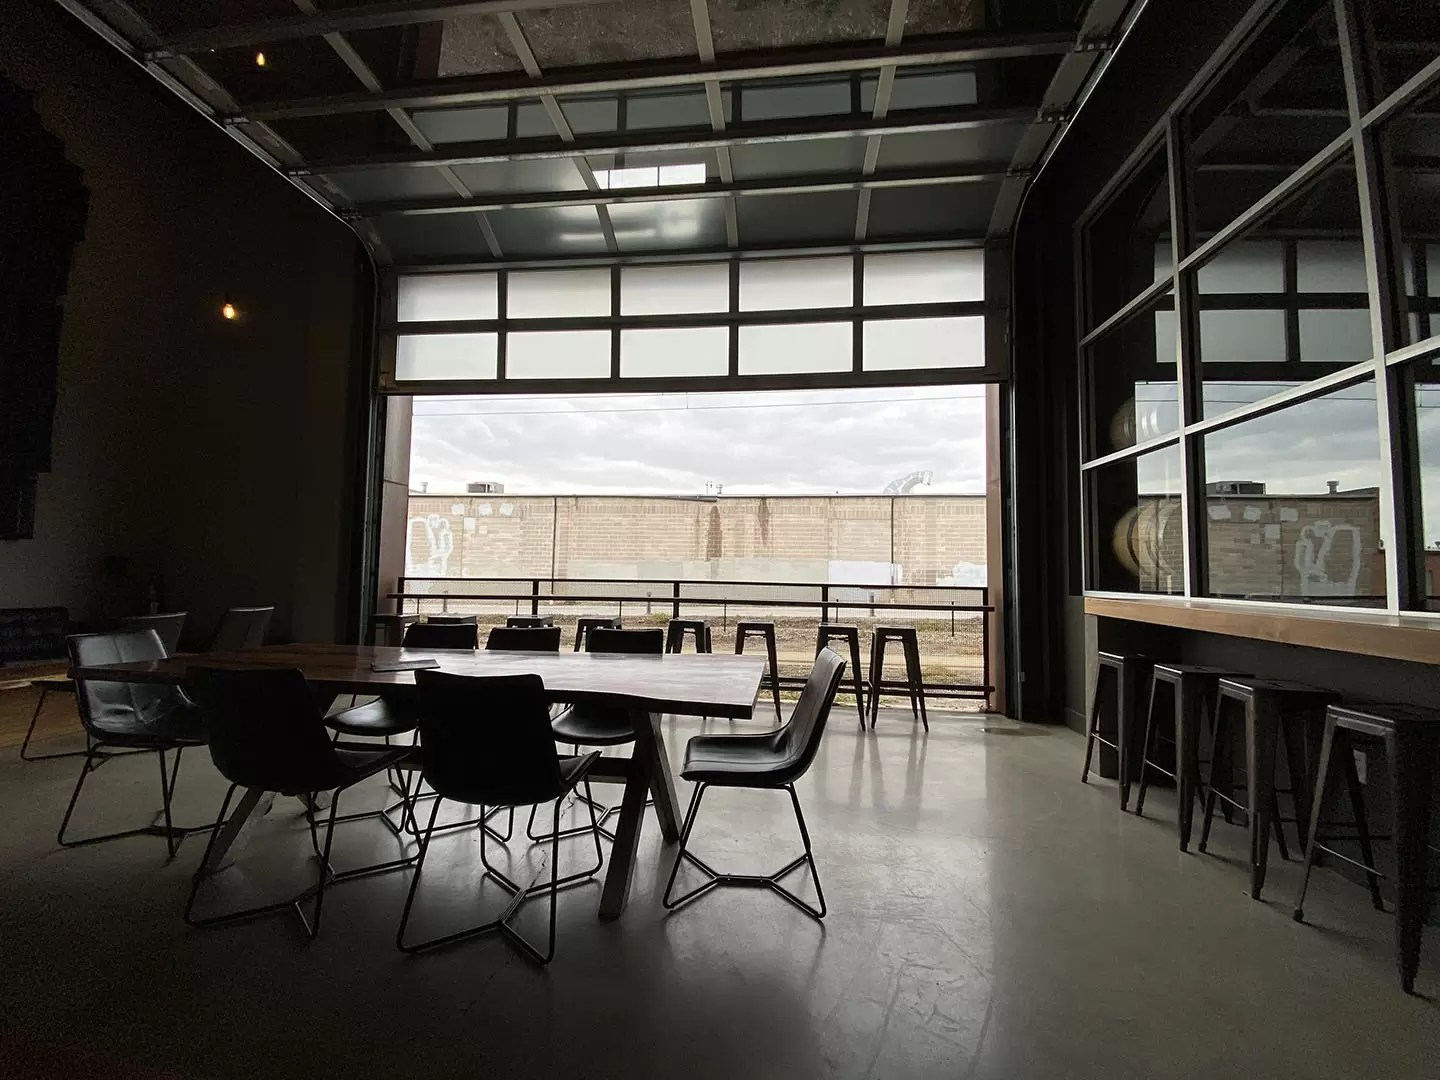 Beehive Distilling - cool interior space